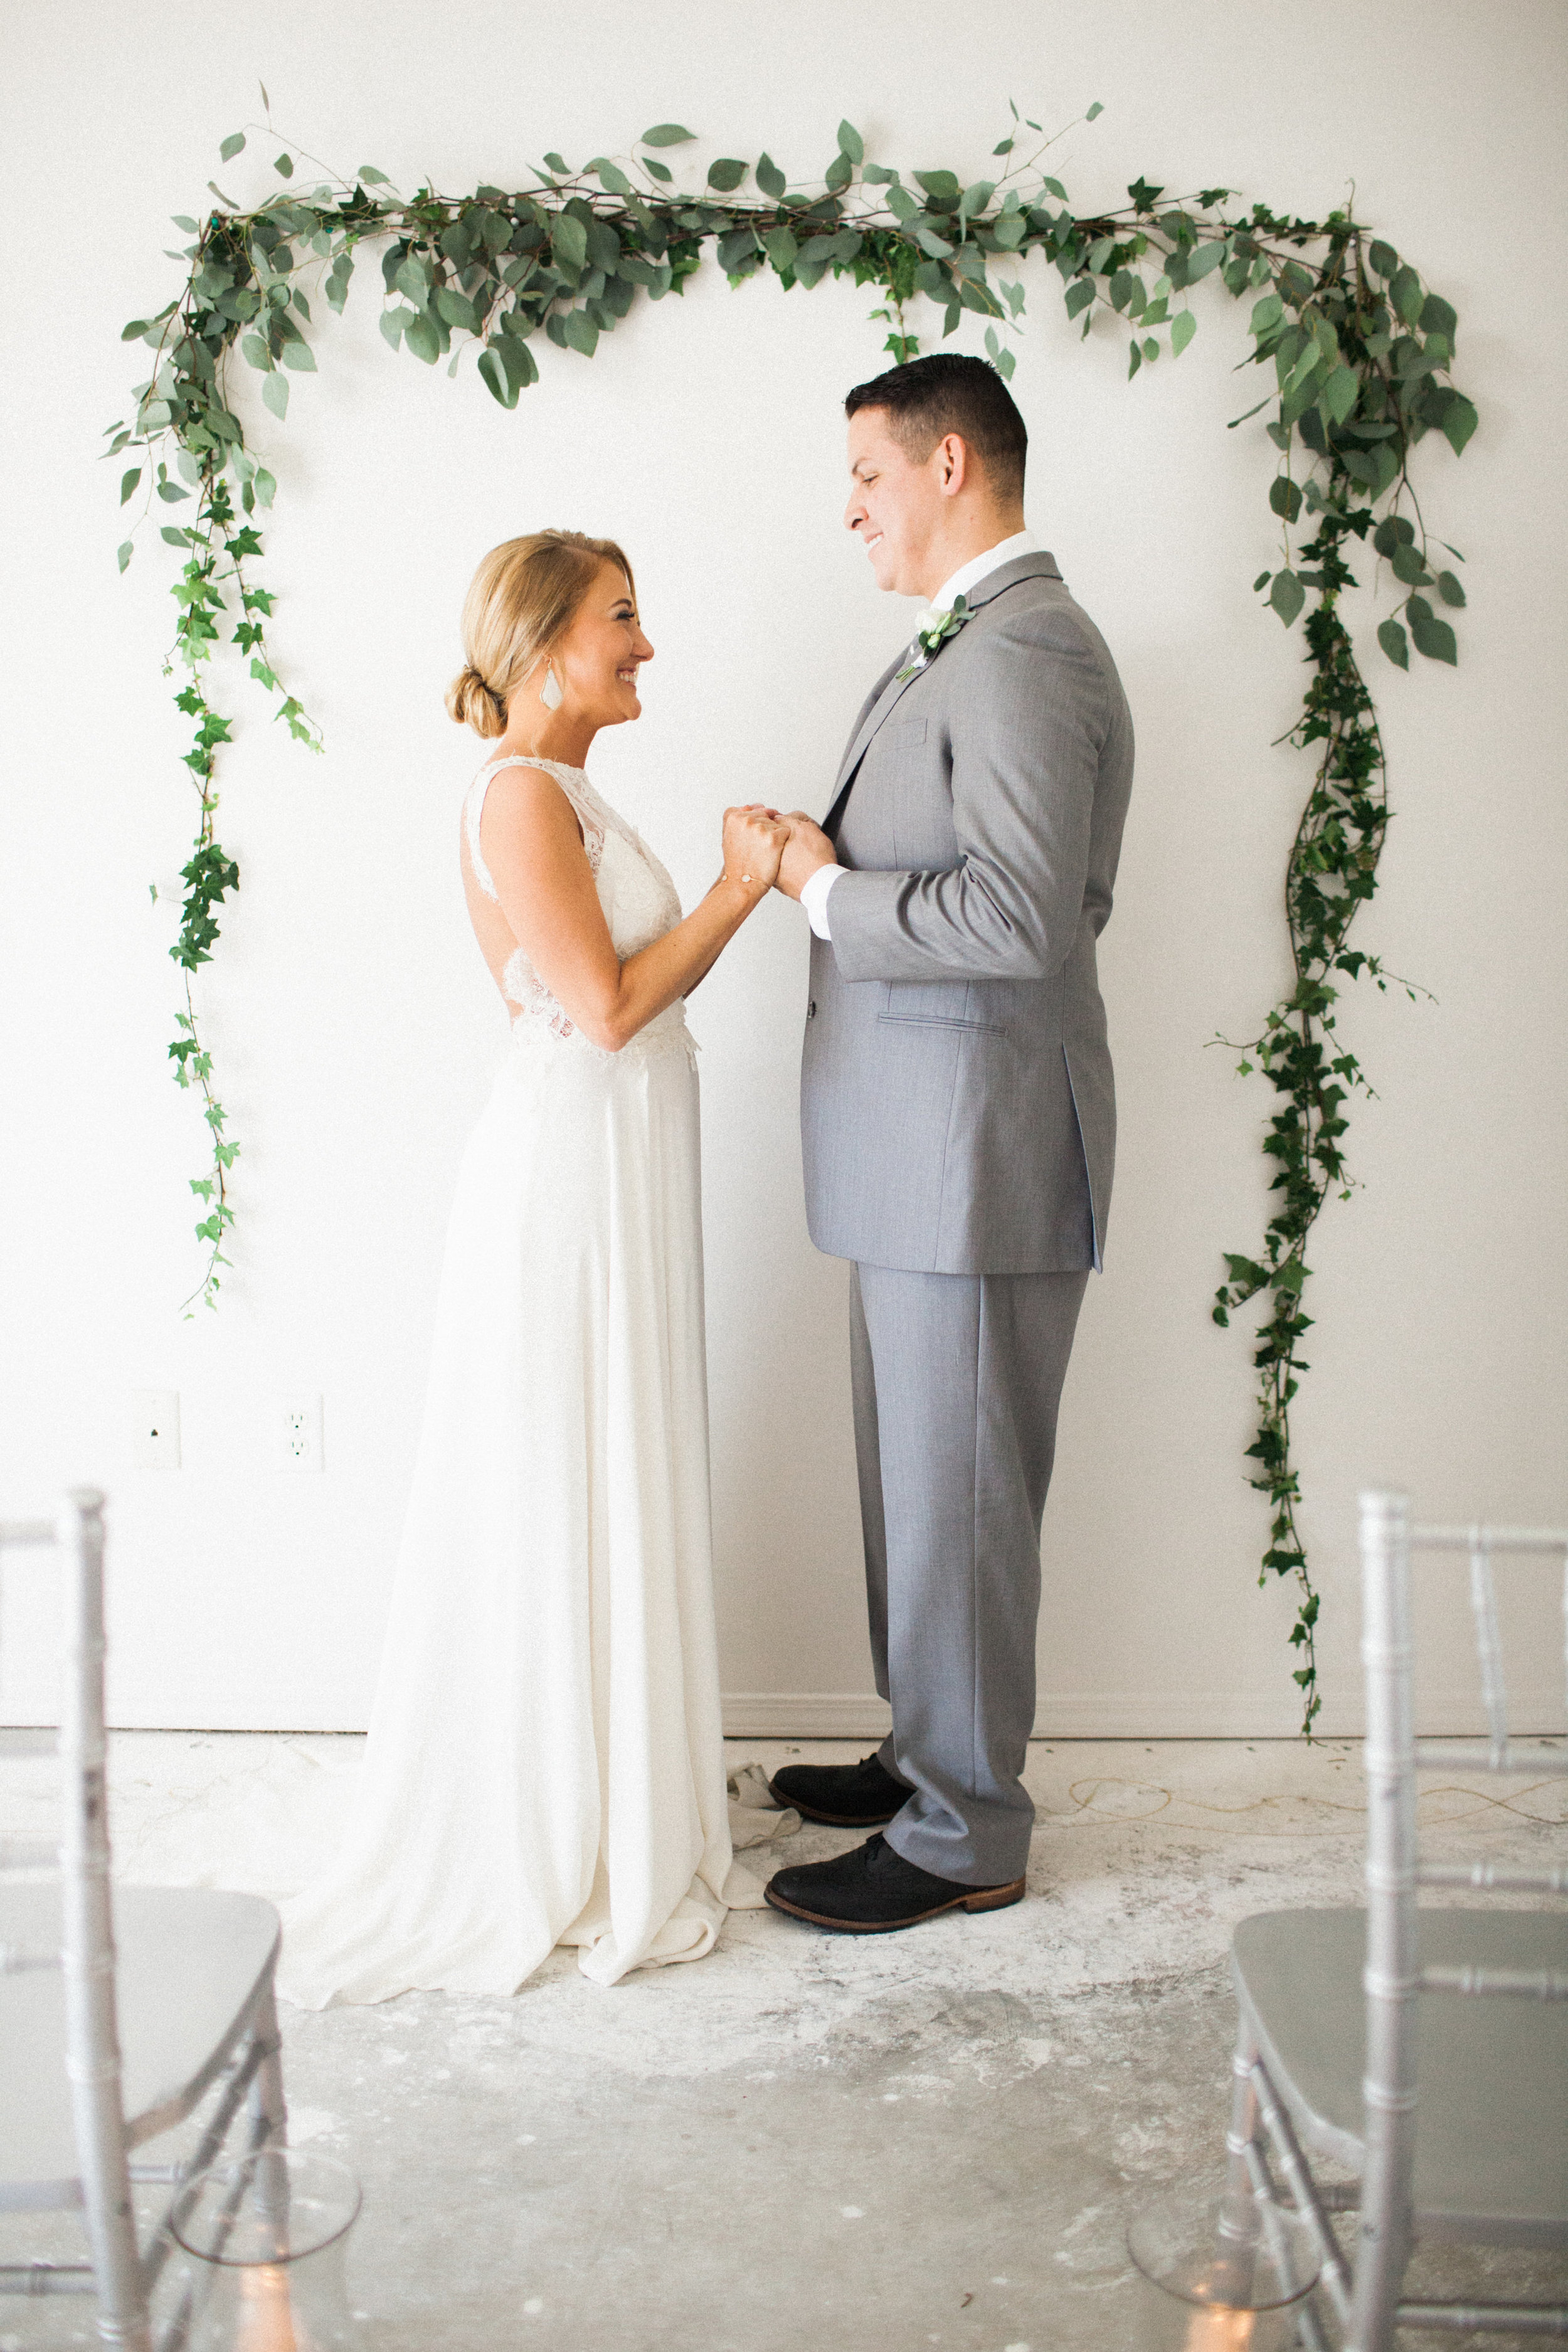 ivey-weddings-cassie-olimb-photography-broome-sarah-seven-wedding-dress-ivory-and-beau-bridal-boutique-savannah-wedding-dresses-savannah-bridal-gowns-savannah-weddings-jacksonville-weddings-jacksonville-bridal-florida-bridal-boutique-12.jpg